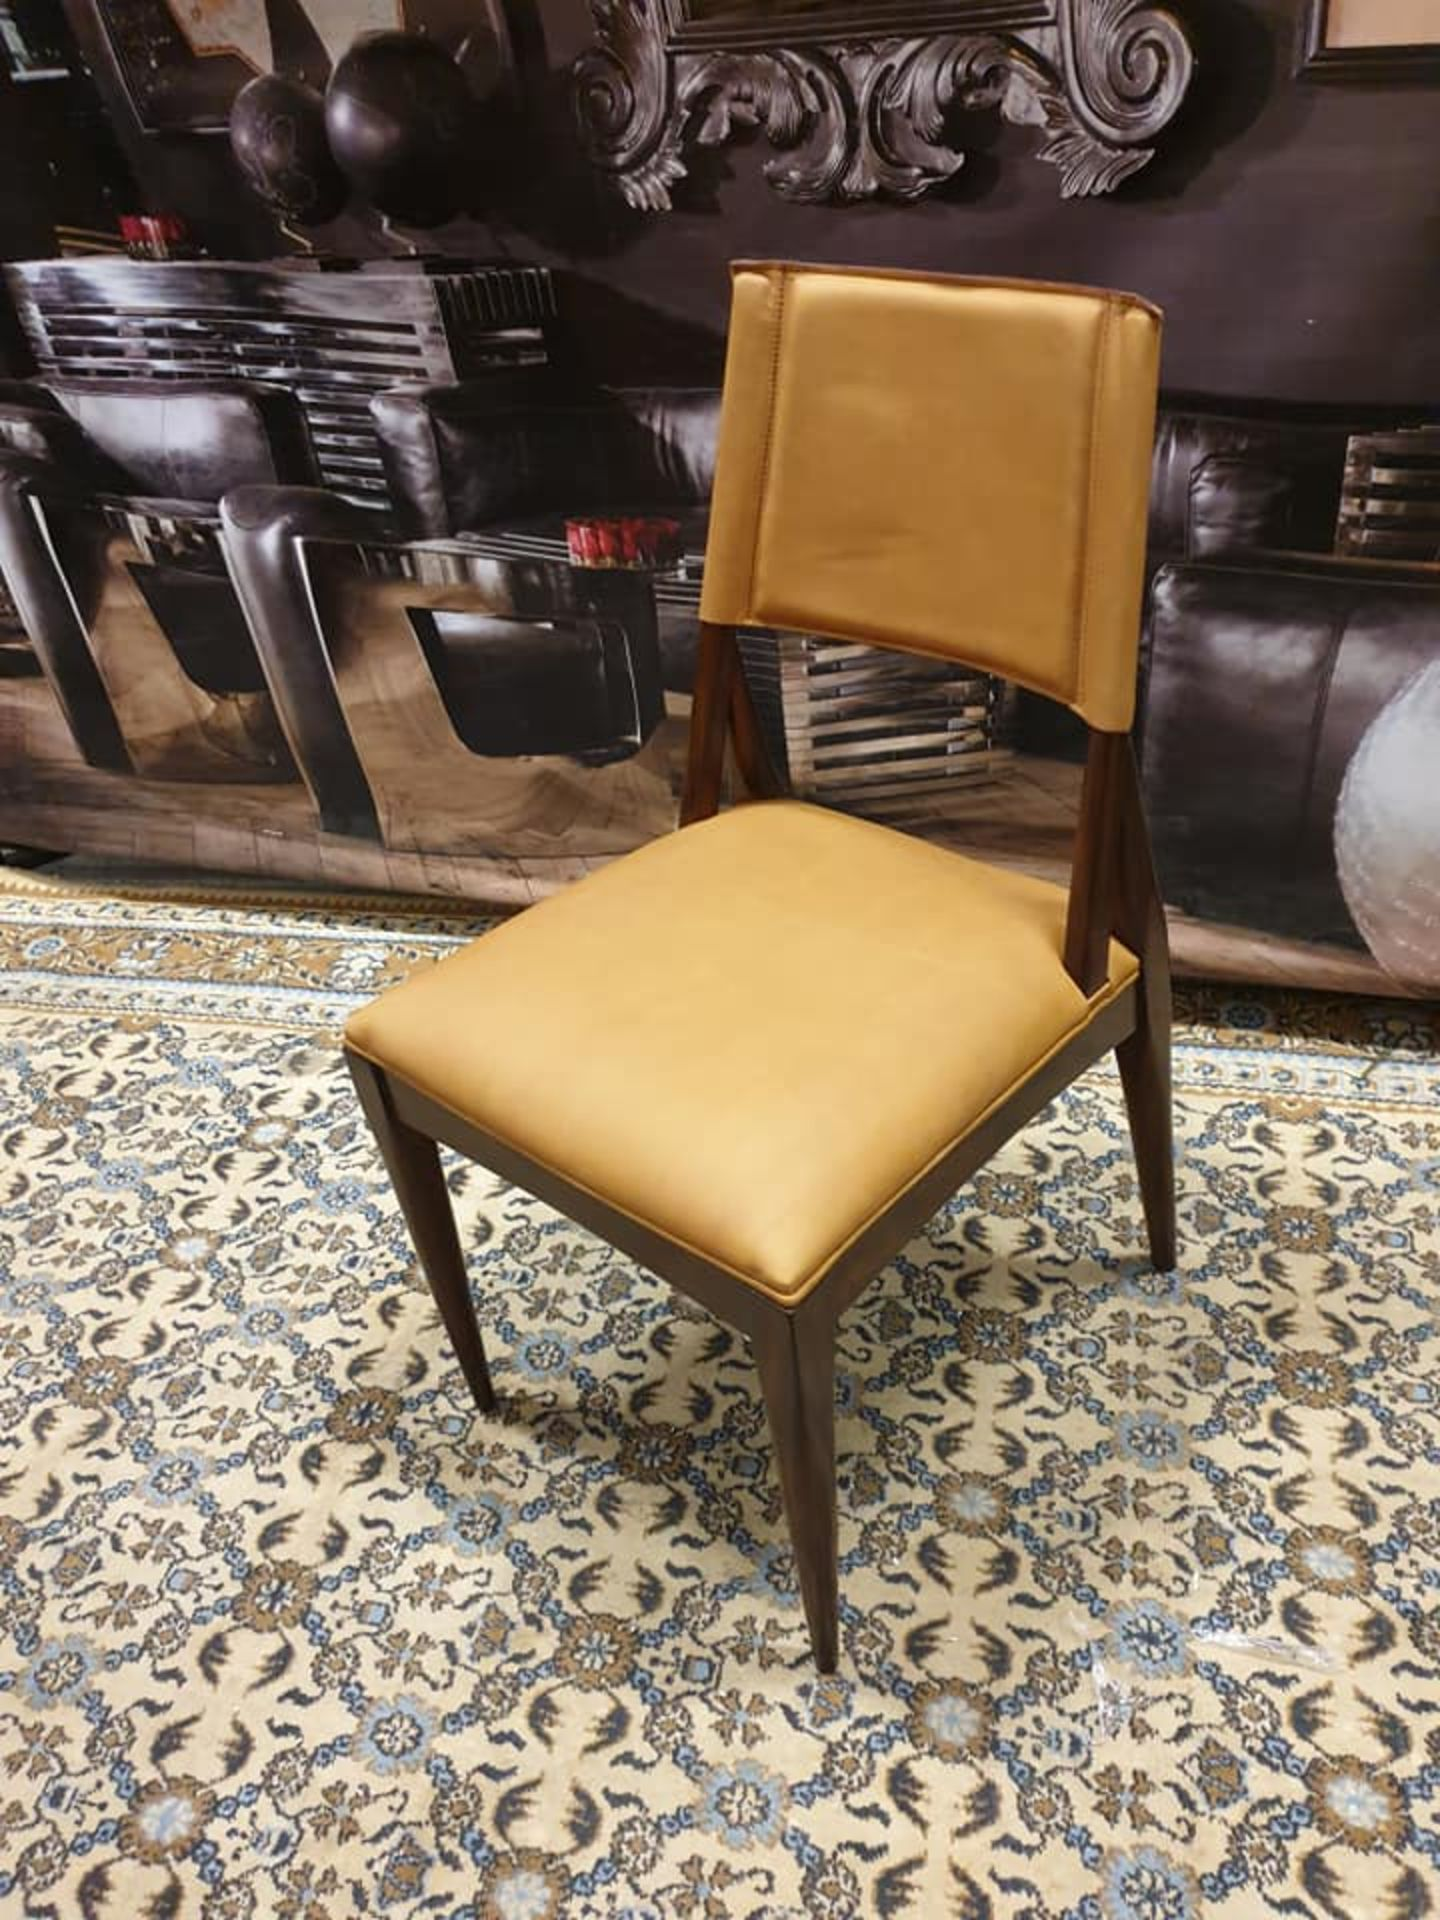 Lot 50 - Starbay Side Chair Camel Leather And Walnut Dining Chair Sleek Design Equally At Home In